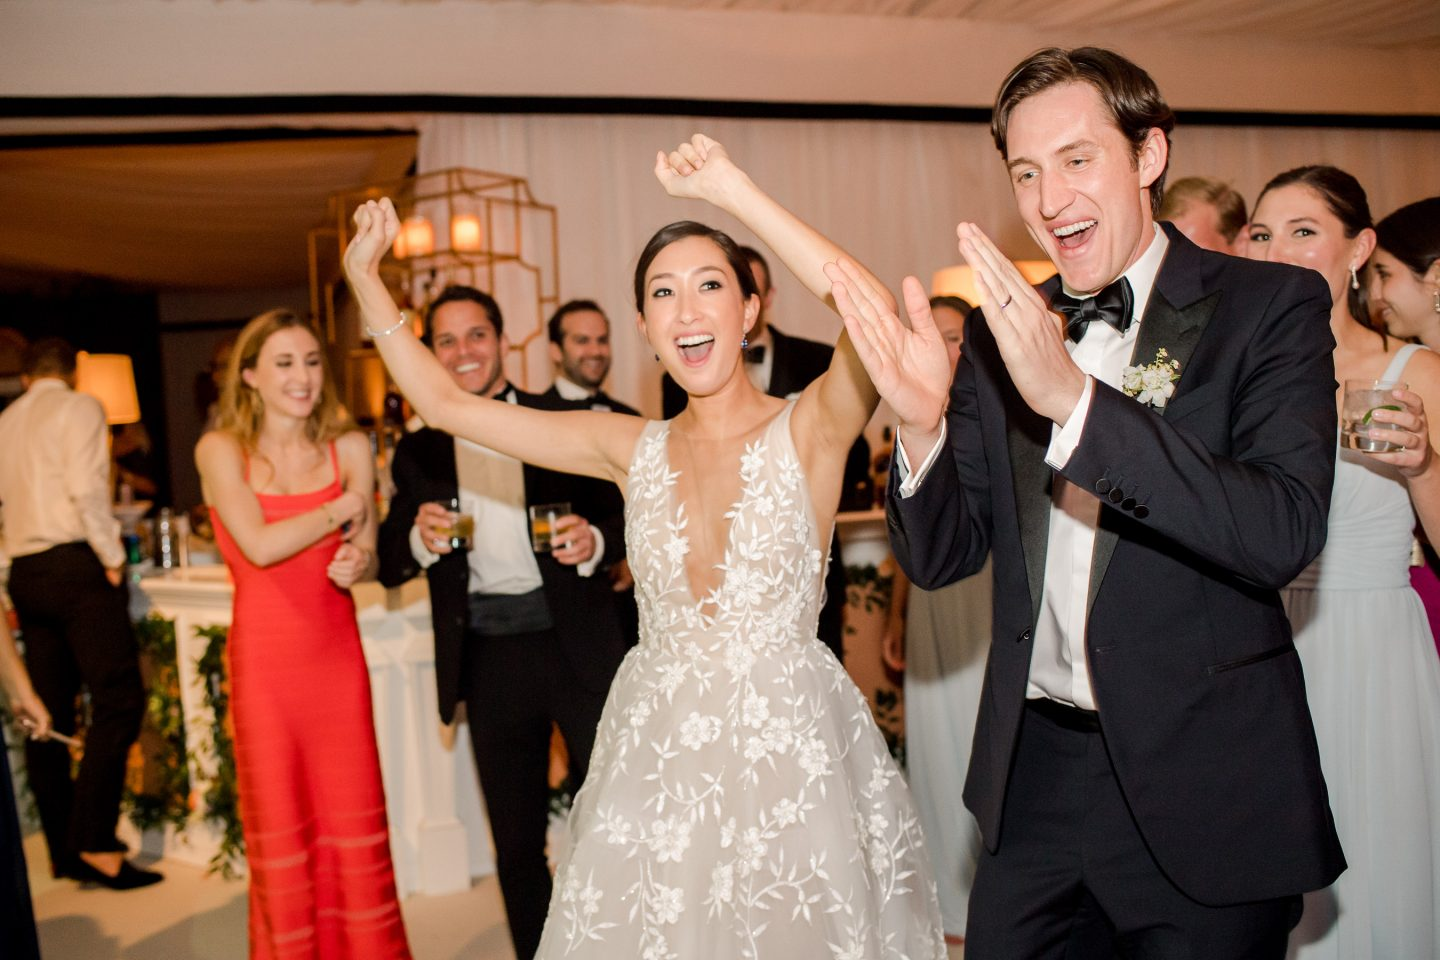 Reception dancing at this Sea Island wedding weekend in Georgia, USA | Photo by Liz Banfield